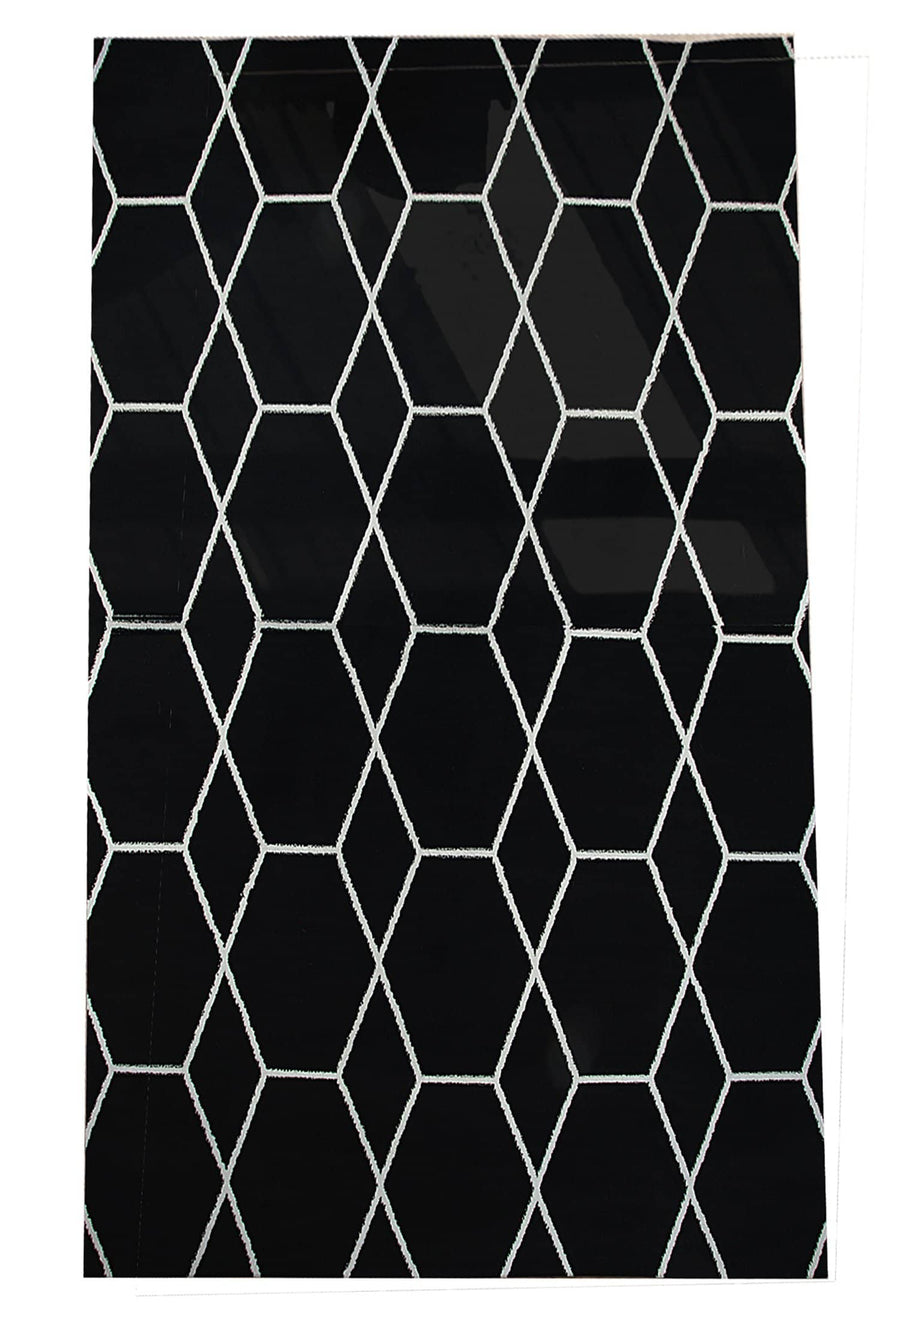 140 MSRUGS MOROCCAN COLLECTION AREA RUG